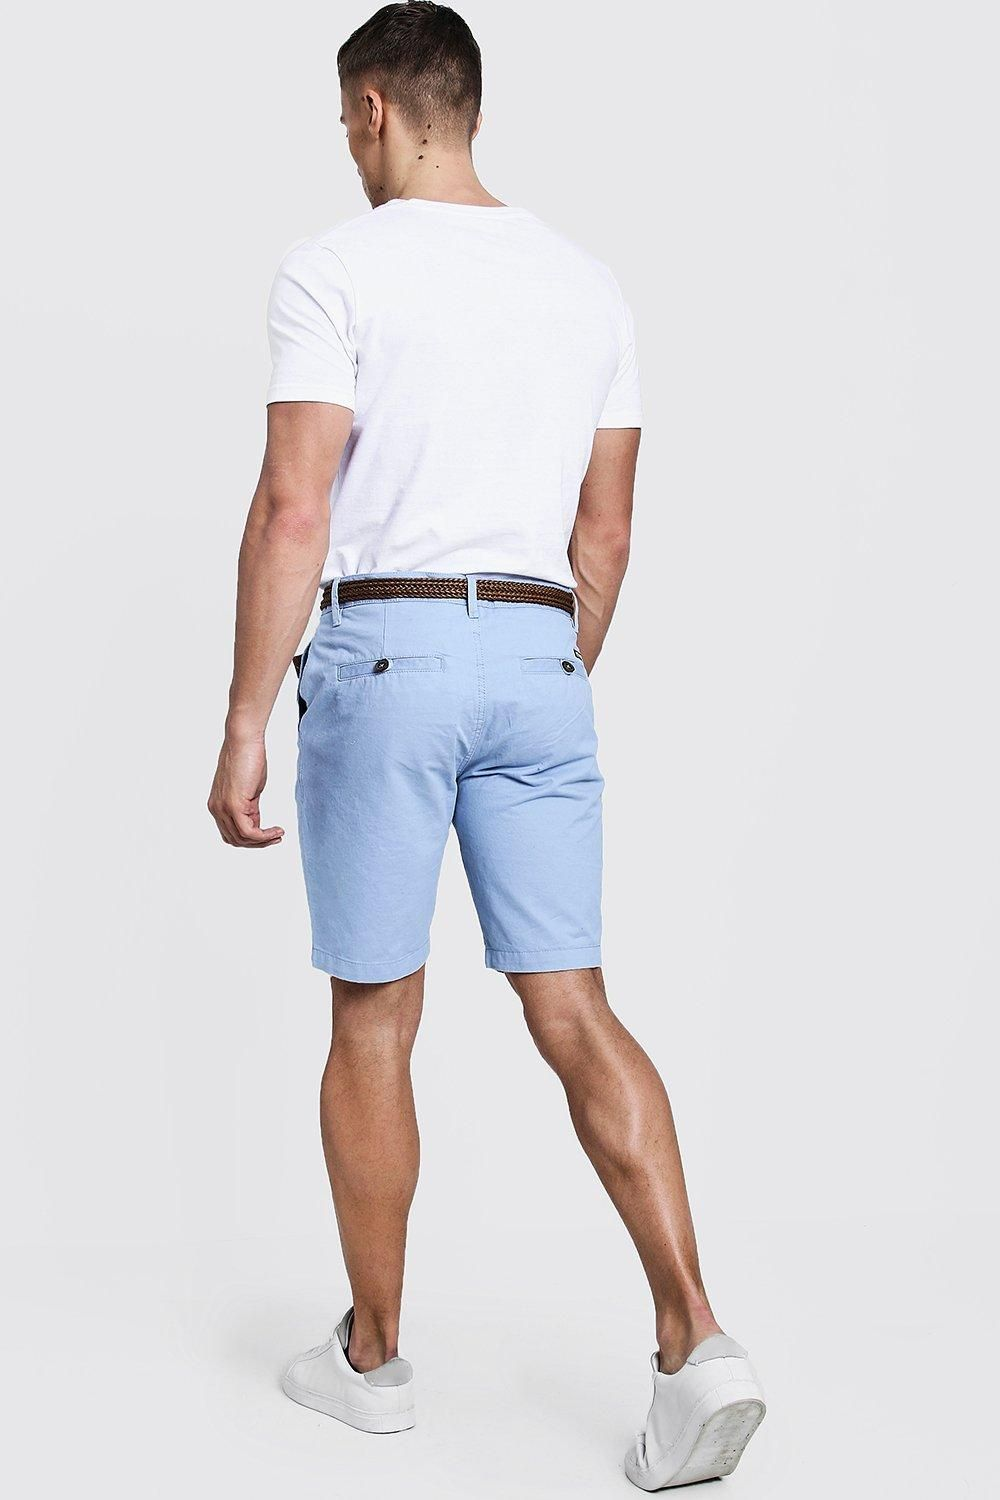 d4df8ee7c16e Slim Fit Cotton Chino Shorts With Belt in 2019 | noir | Chino shorts ...